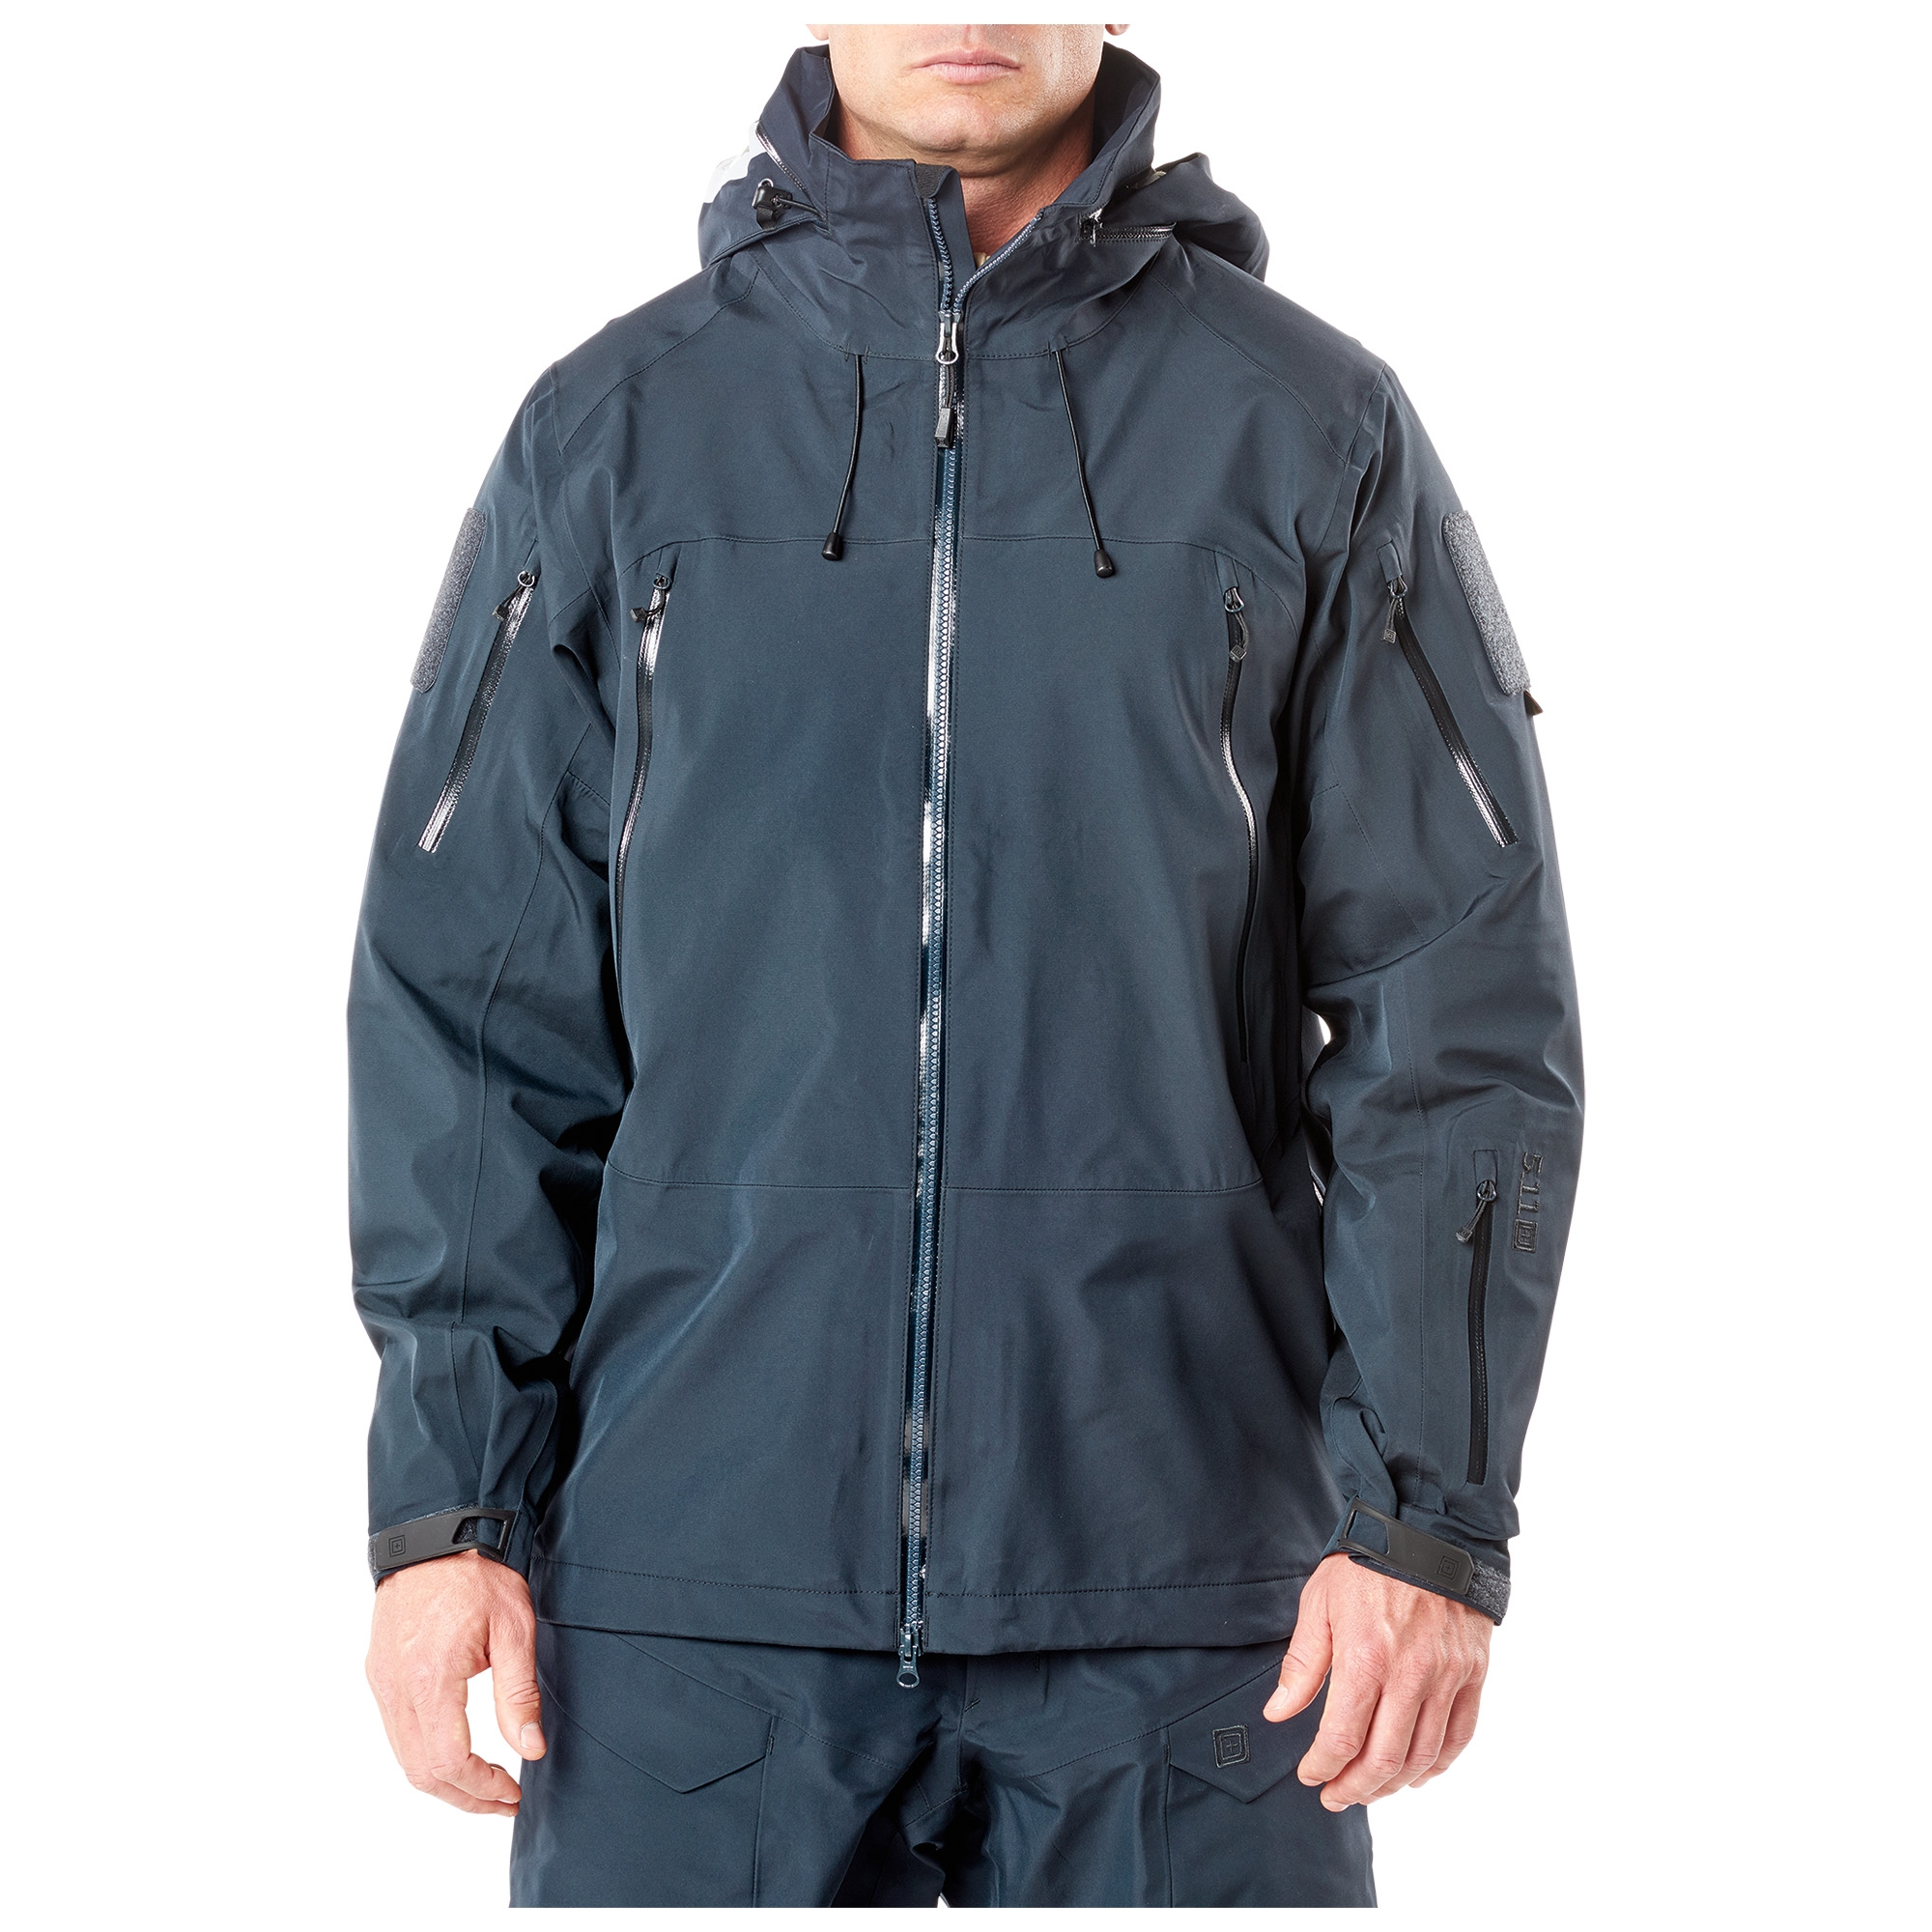 5.11 Tactical Men's XPRT Waterproof Jacket (Blue)